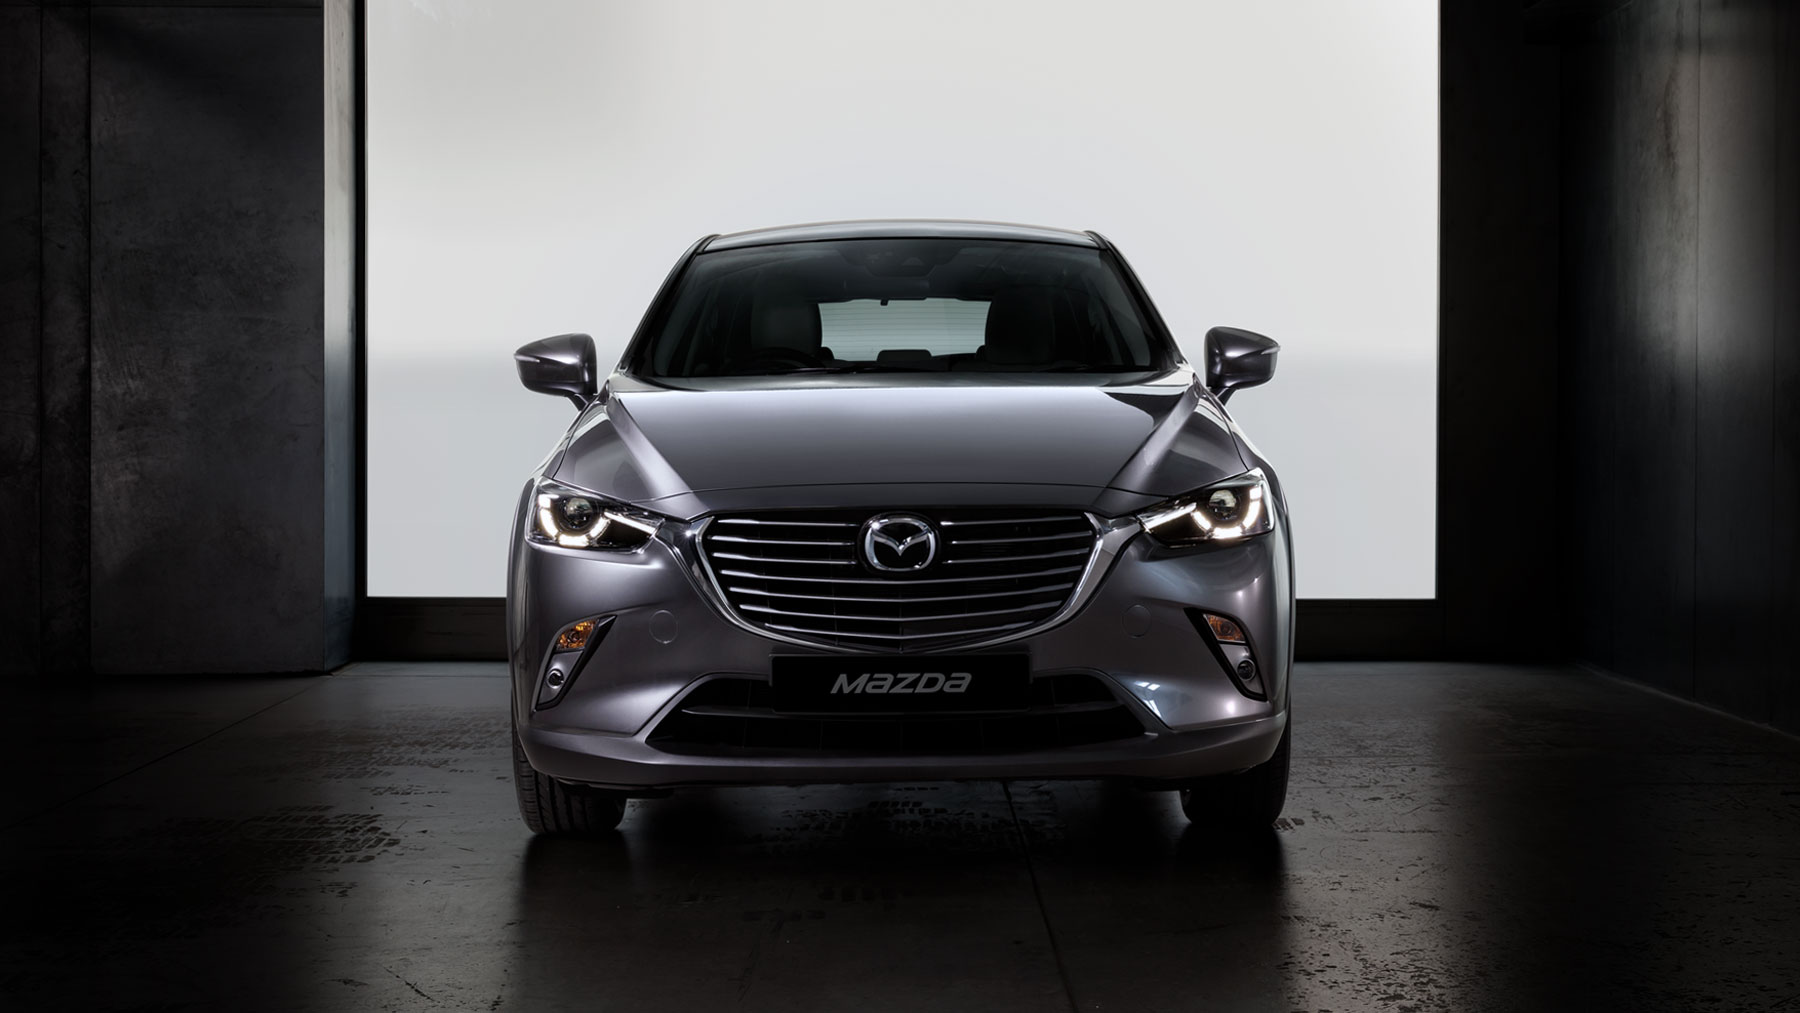 2017 mazda cx 3 for sale near pensacola fl mazda of fort walton beach. Black Bedroom Furniture Sets. Home Design Ideas